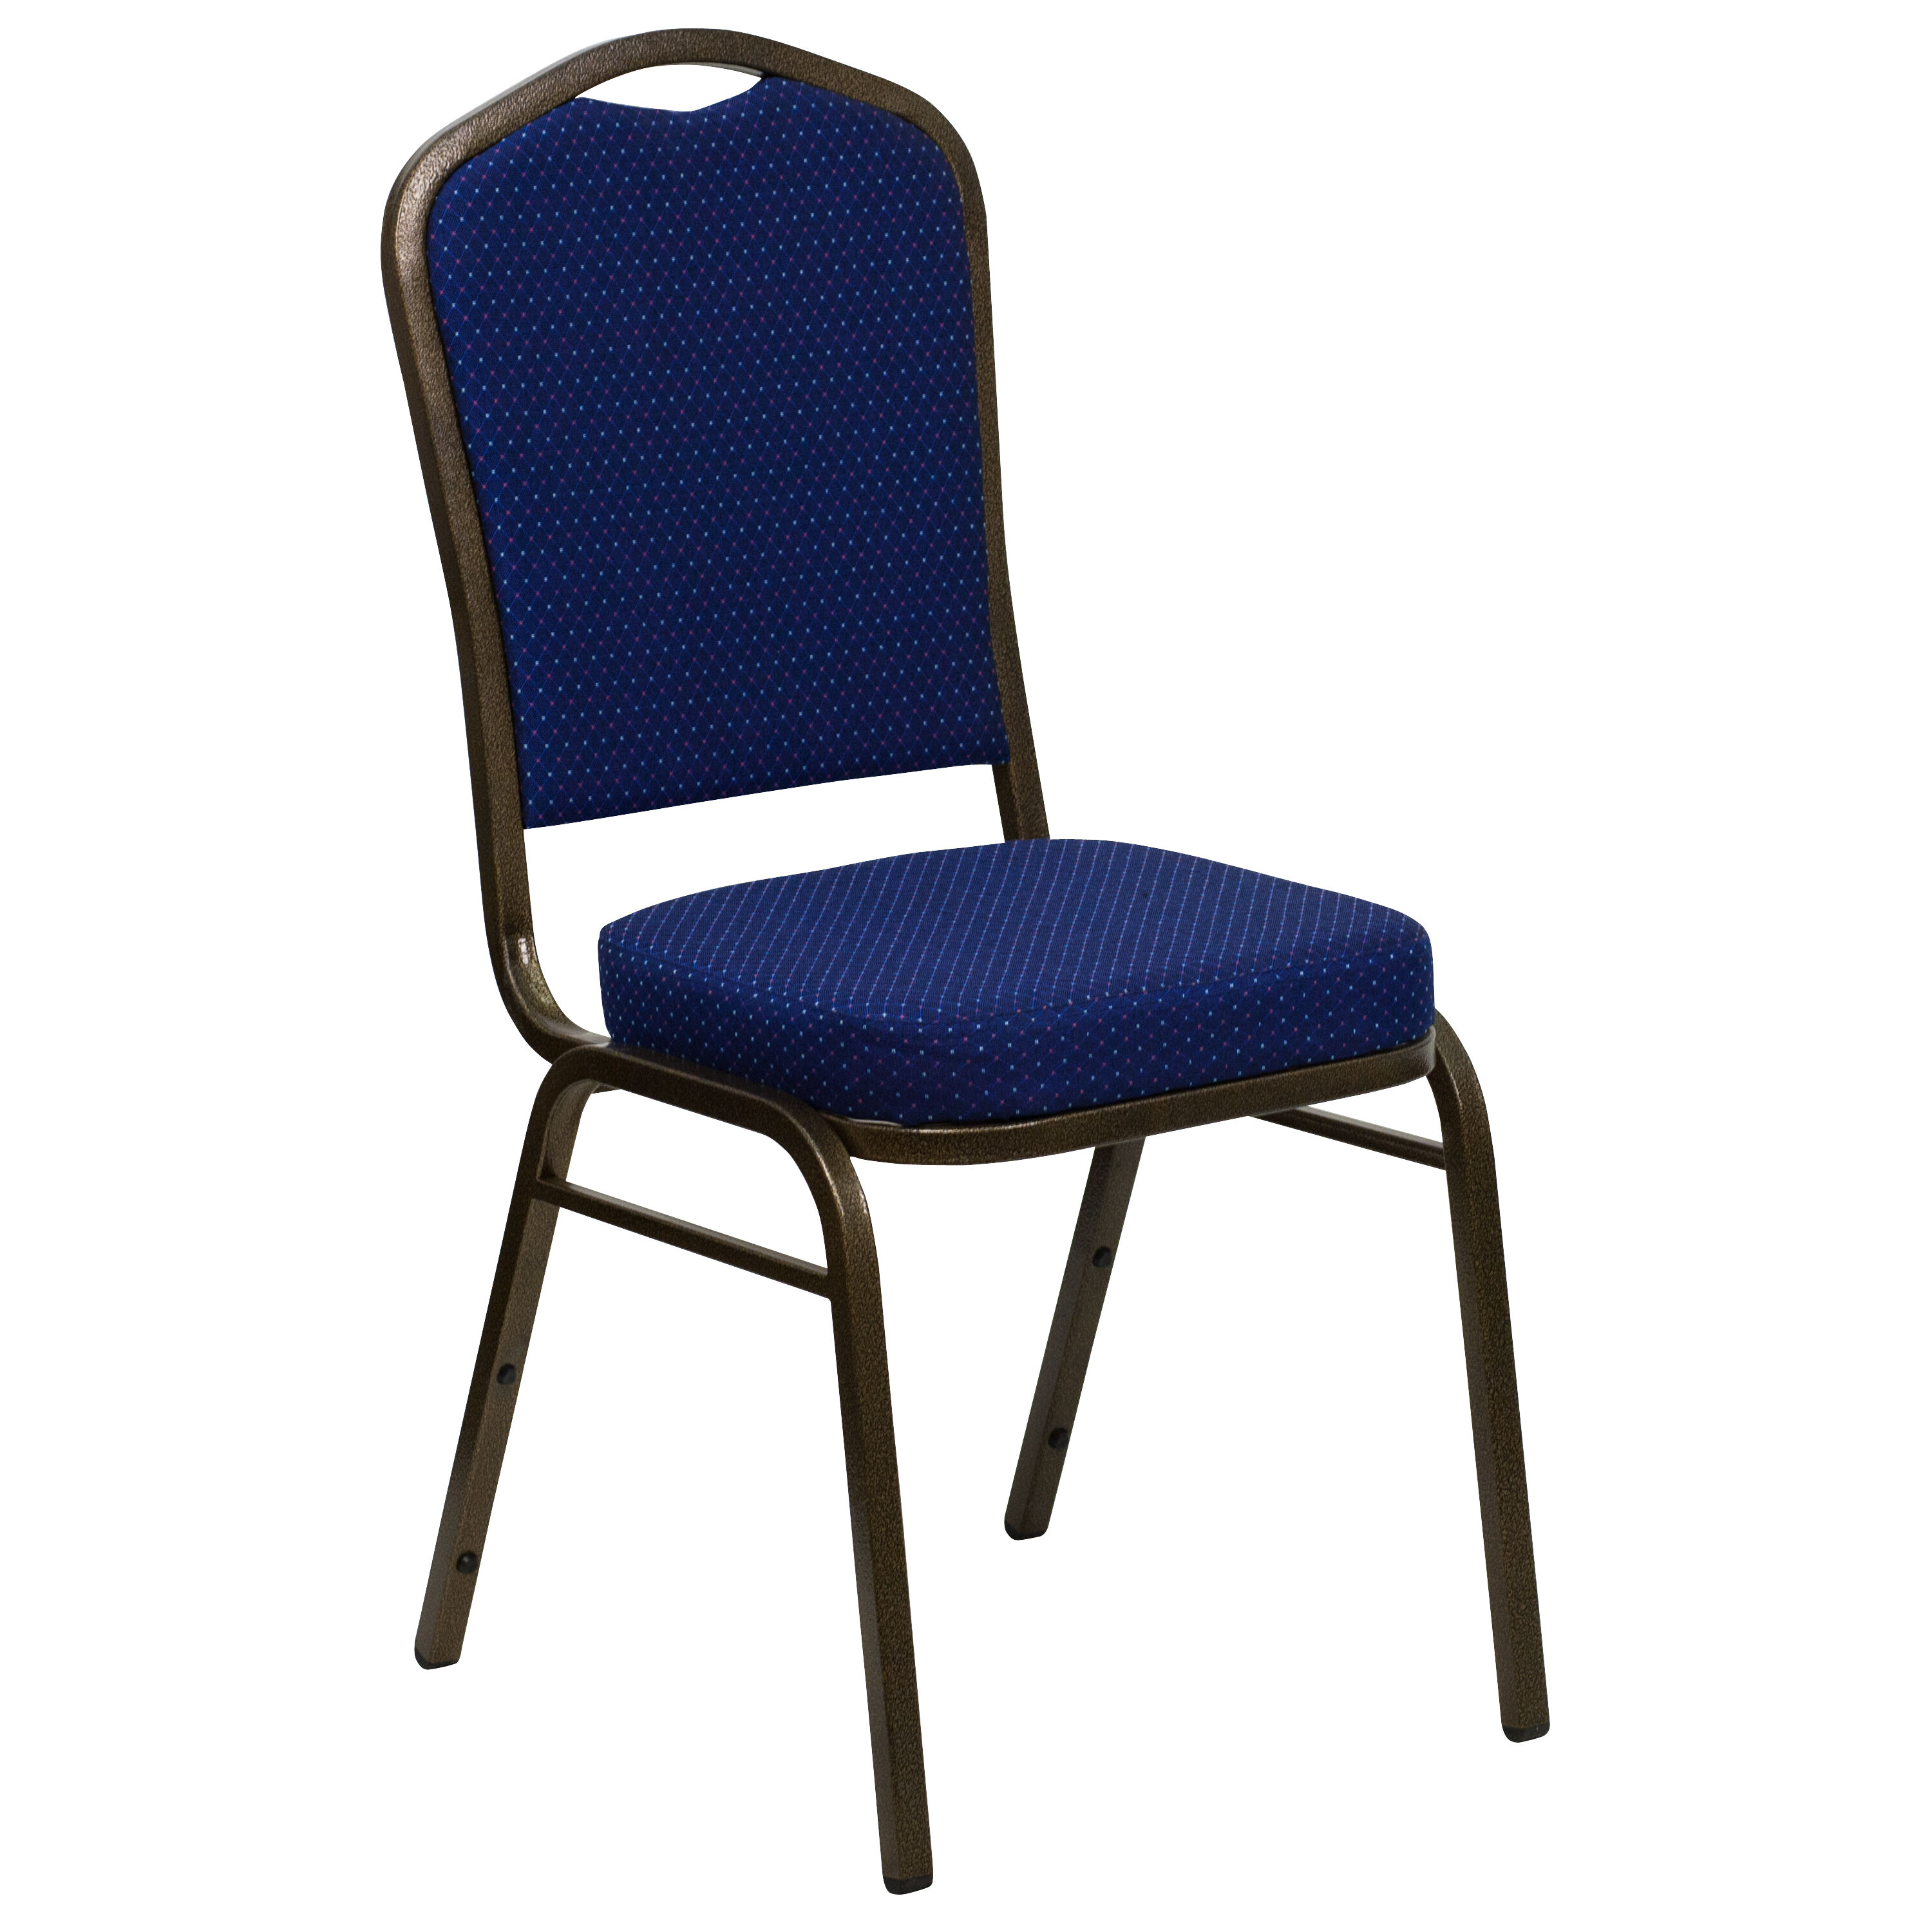 Blue Patterned Chair Hercules Series Crown Back Stacking Banquet Chair In Navy Blue Patterned Fabric Gold Vein Frame